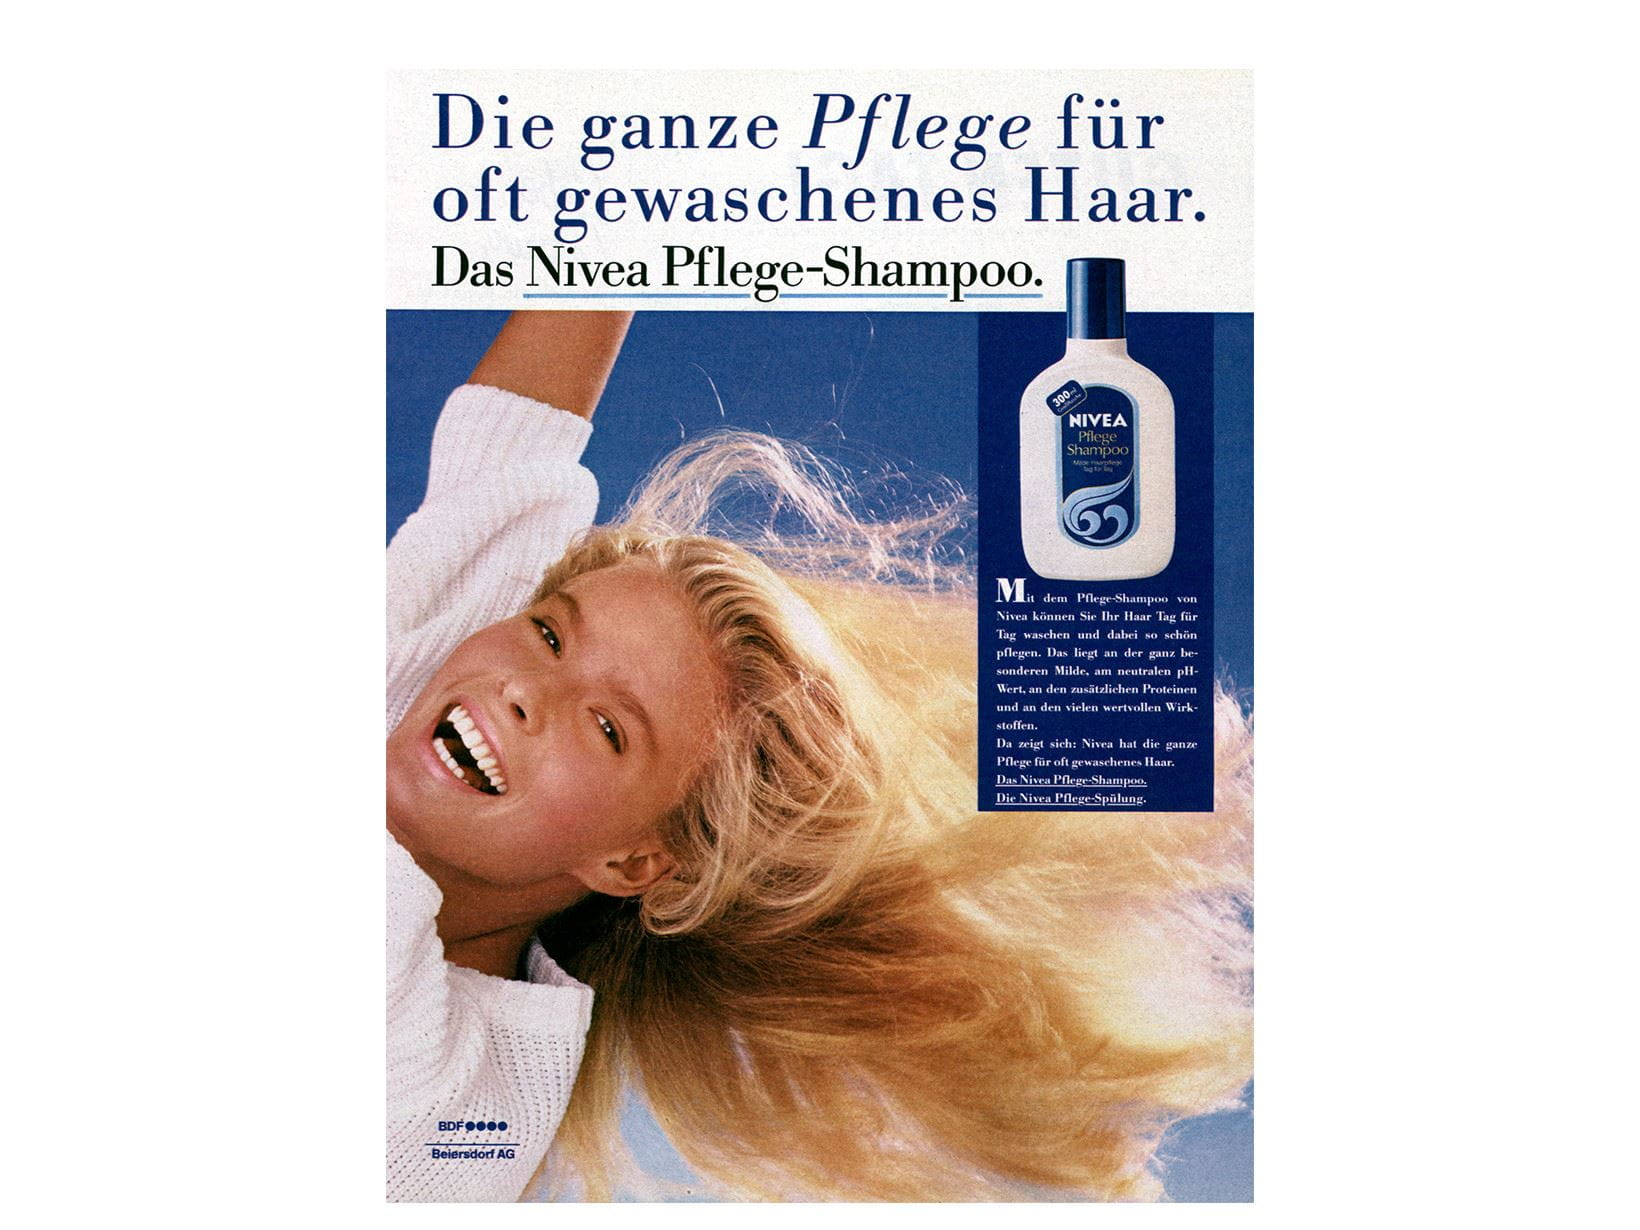 NIVEA advertisement Nourishing shampoo 1985